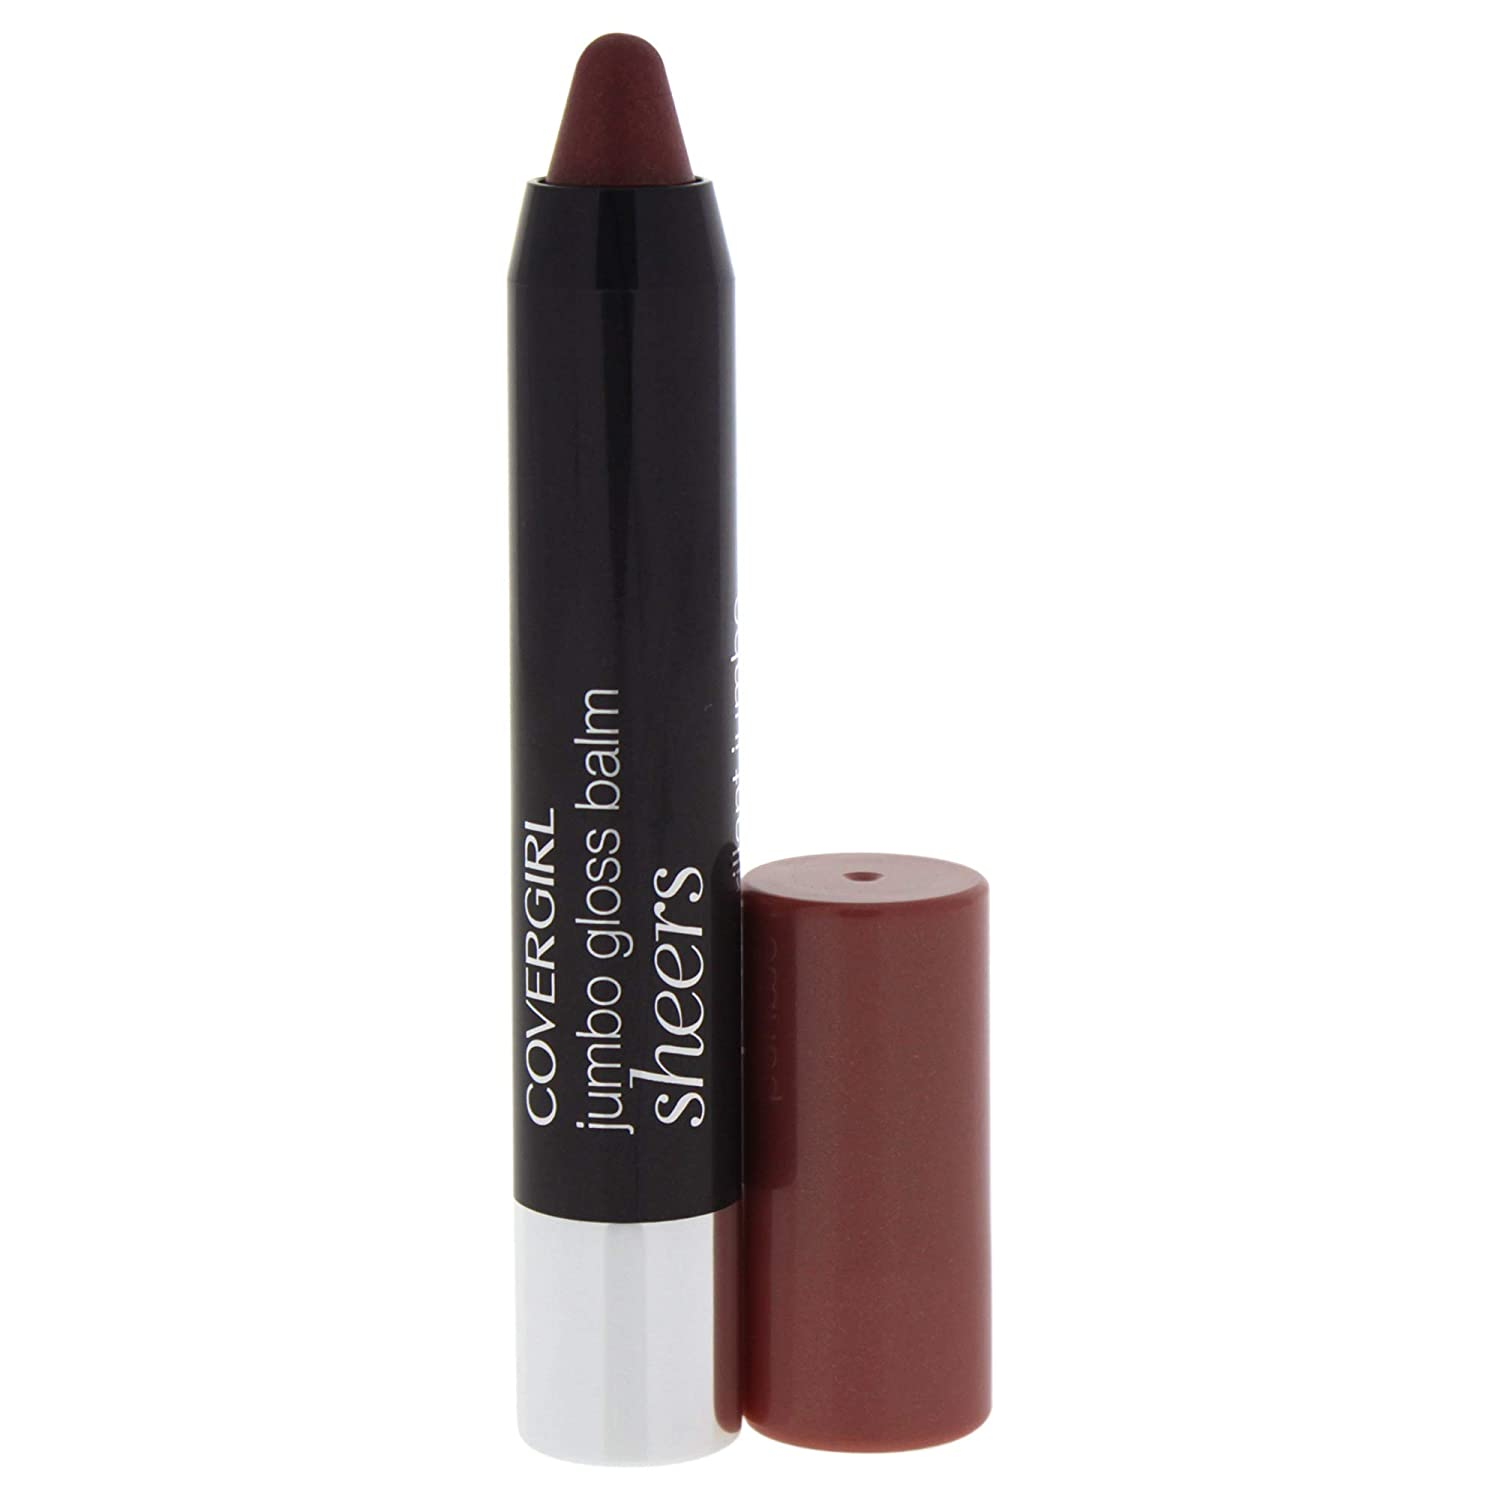 COVERGIRL Lip Perfection Jumbo 70% OFF Outlet Gloss Balm Twist o .13 270 Cocoa Max 79% OFF